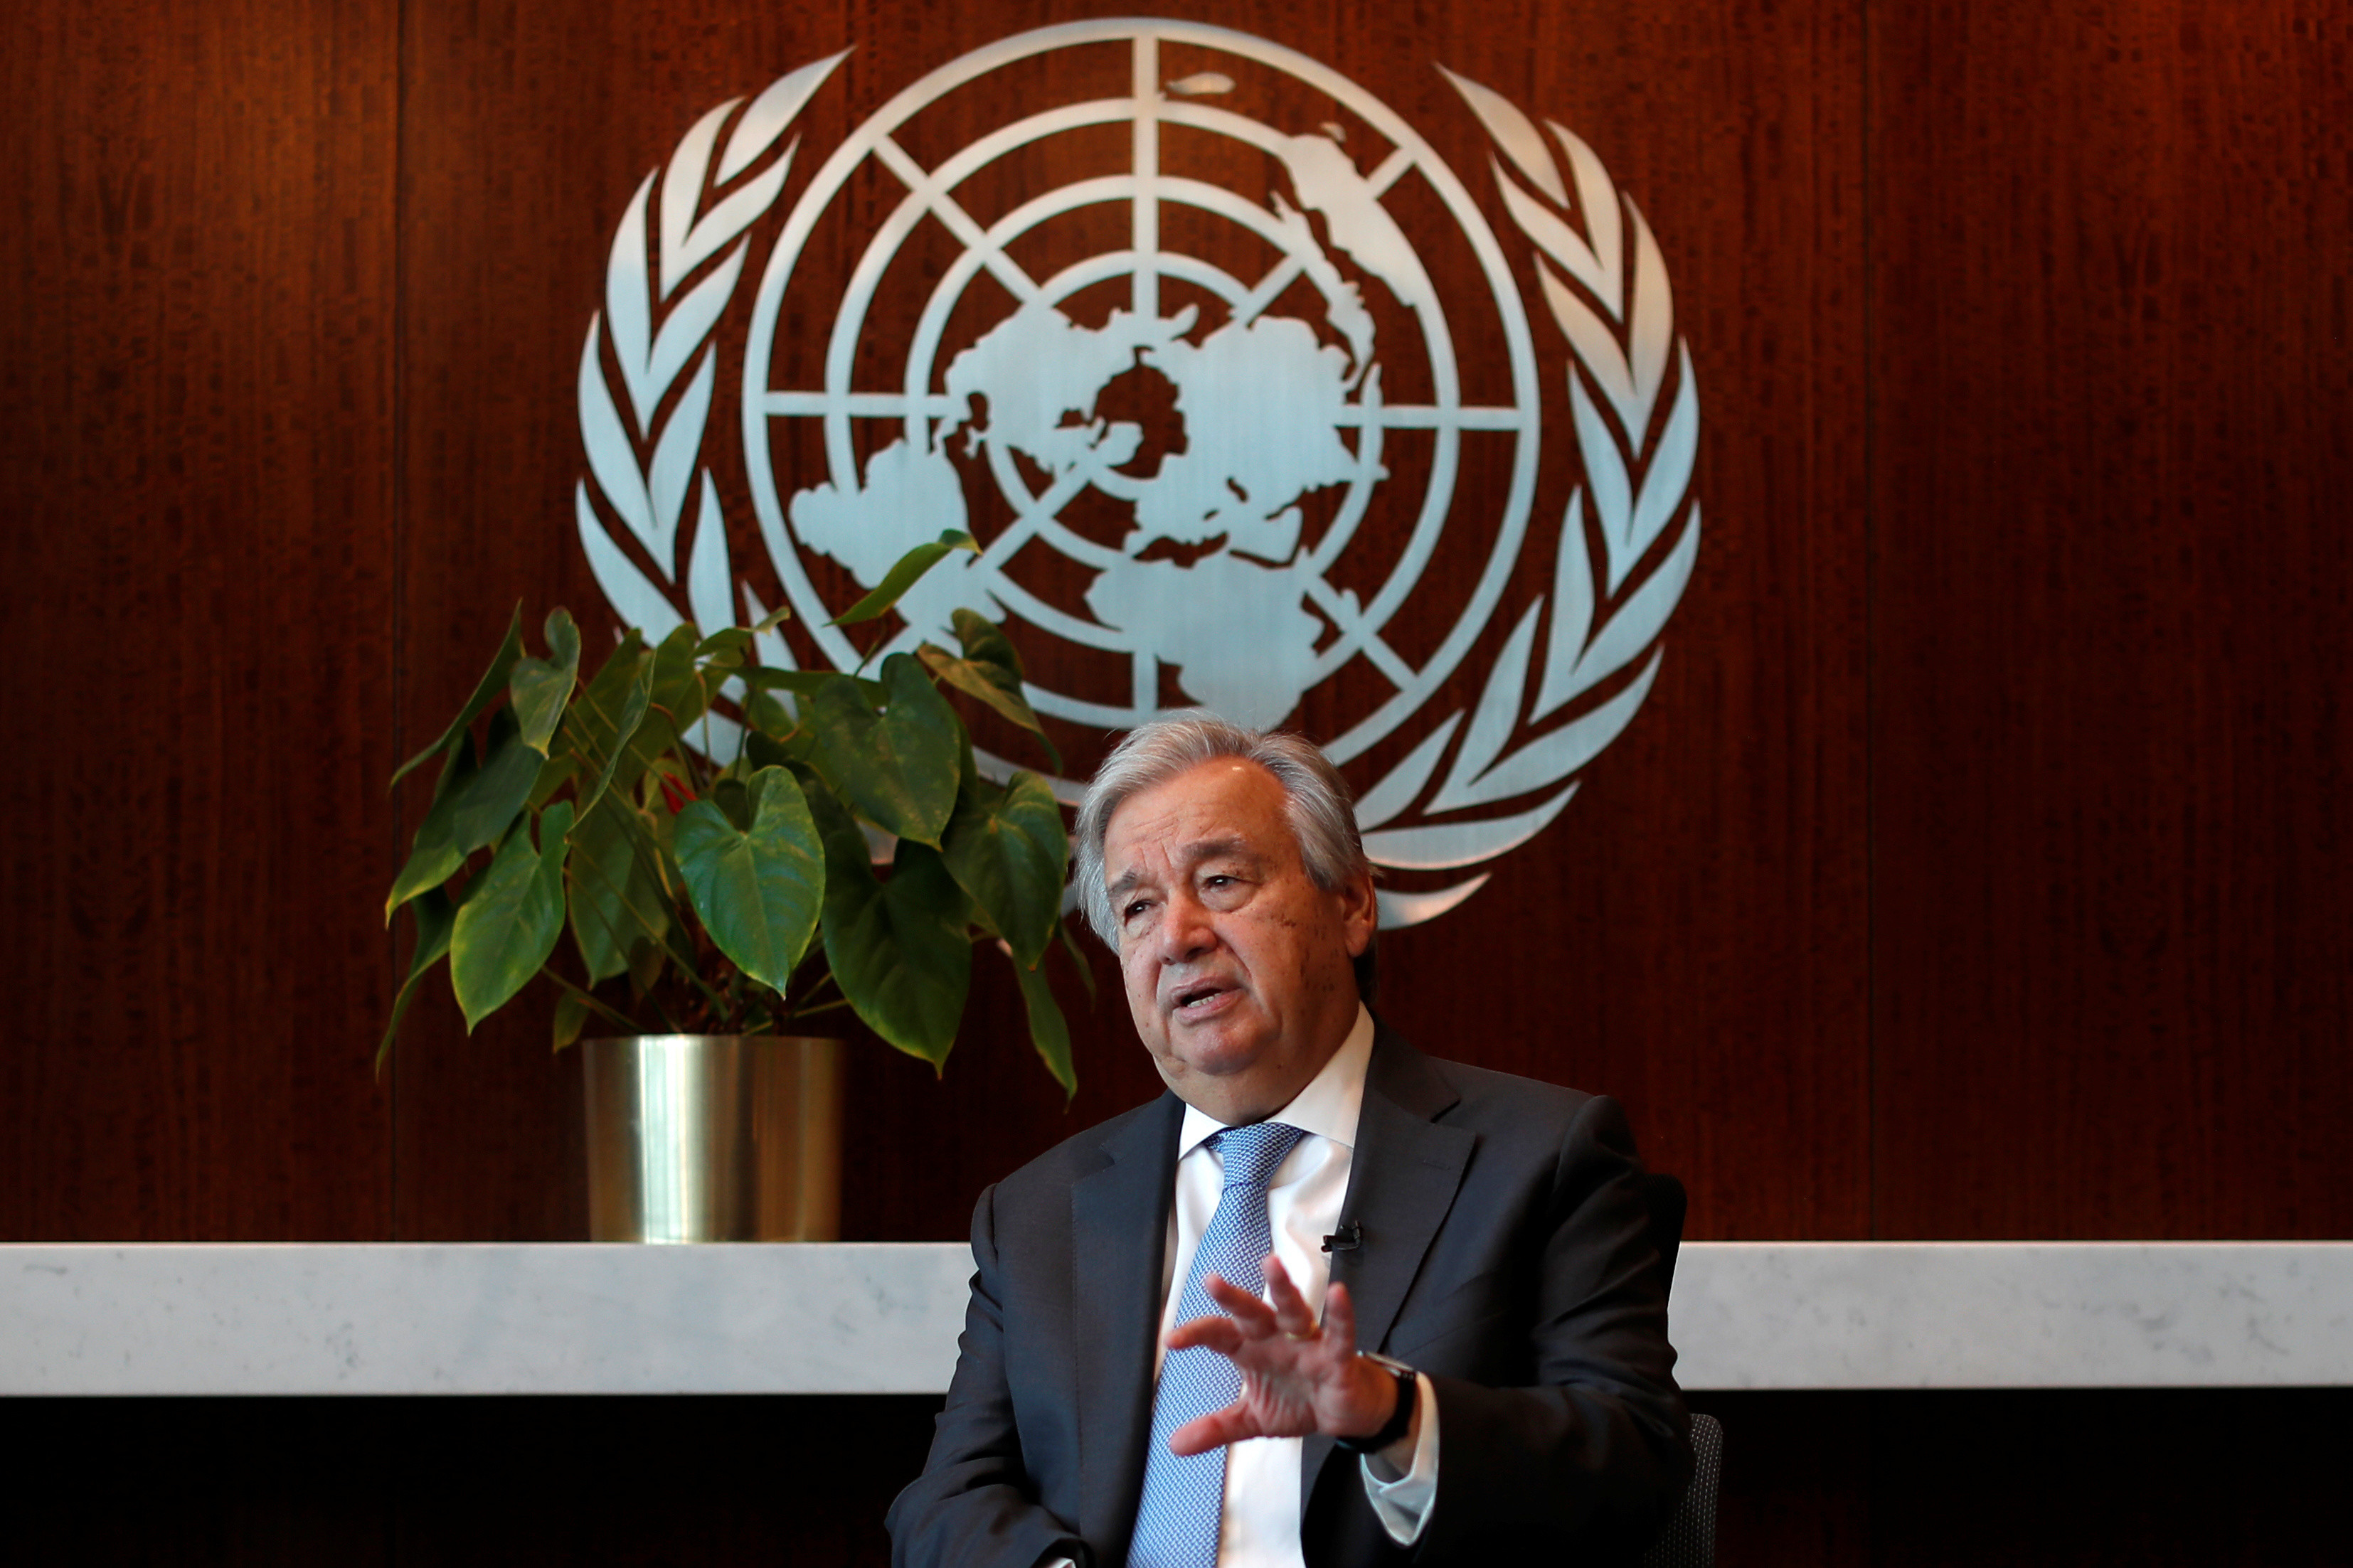 United Nations Secretary-General Antonio Guterres speaks during an interview with Reuters at U.N. headquarters in New York City, New York, U.S., September 14, 2020. Picture taken September 14, 2020. REUTERS/Mike Segar - RC2WYI9TQ196